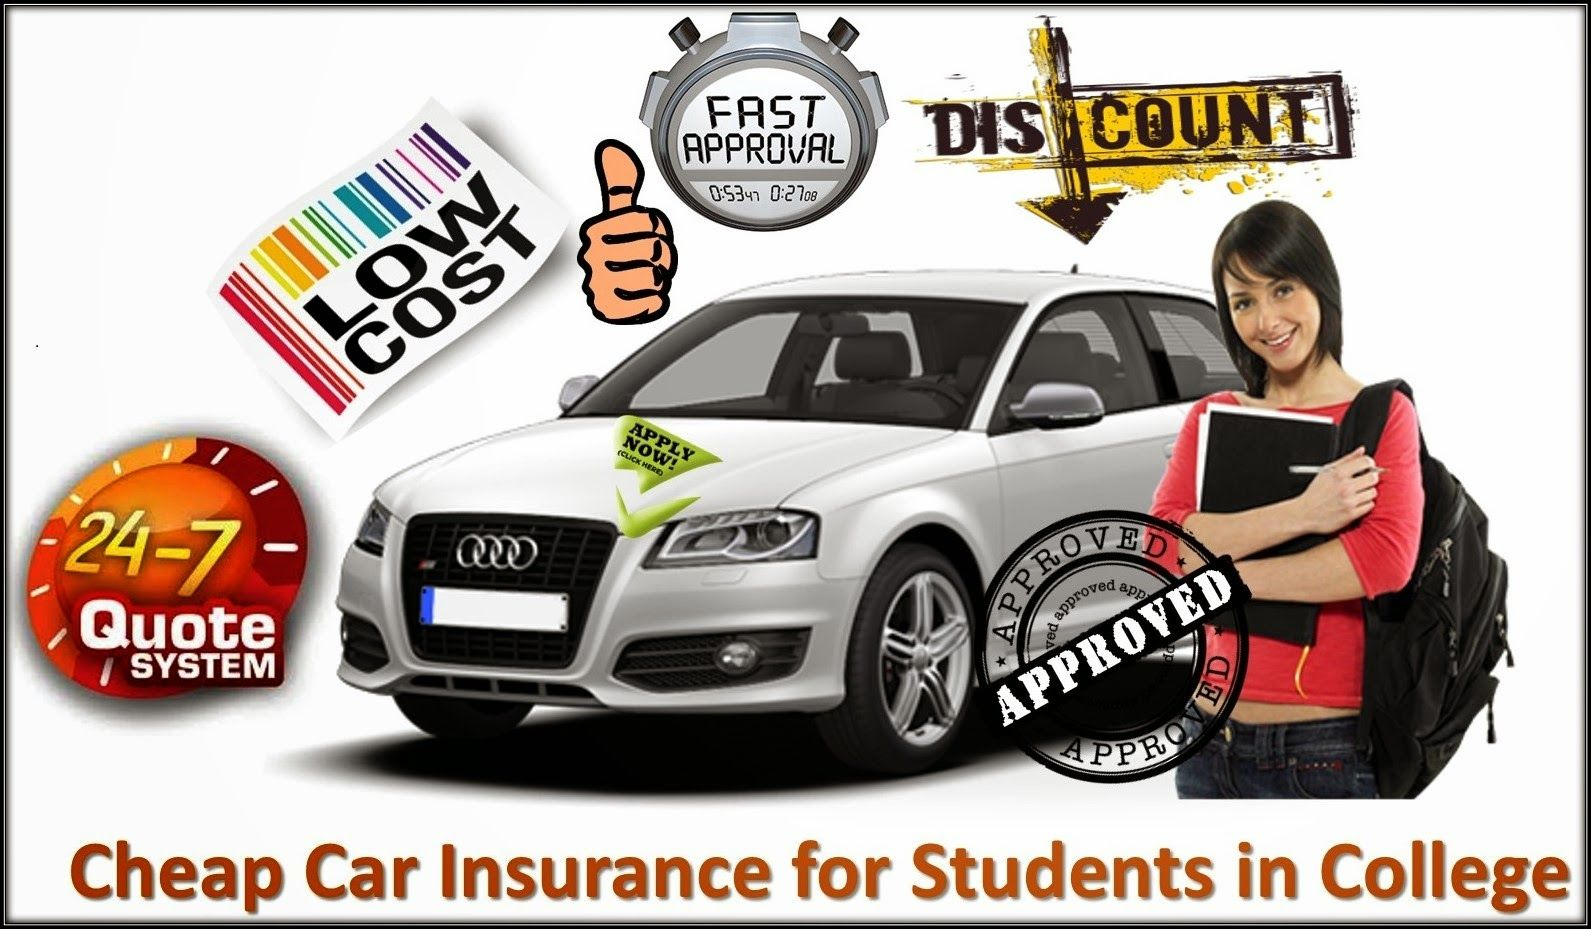 Get The Best Full Coverage Car Insurance At Cheap Rates And Full